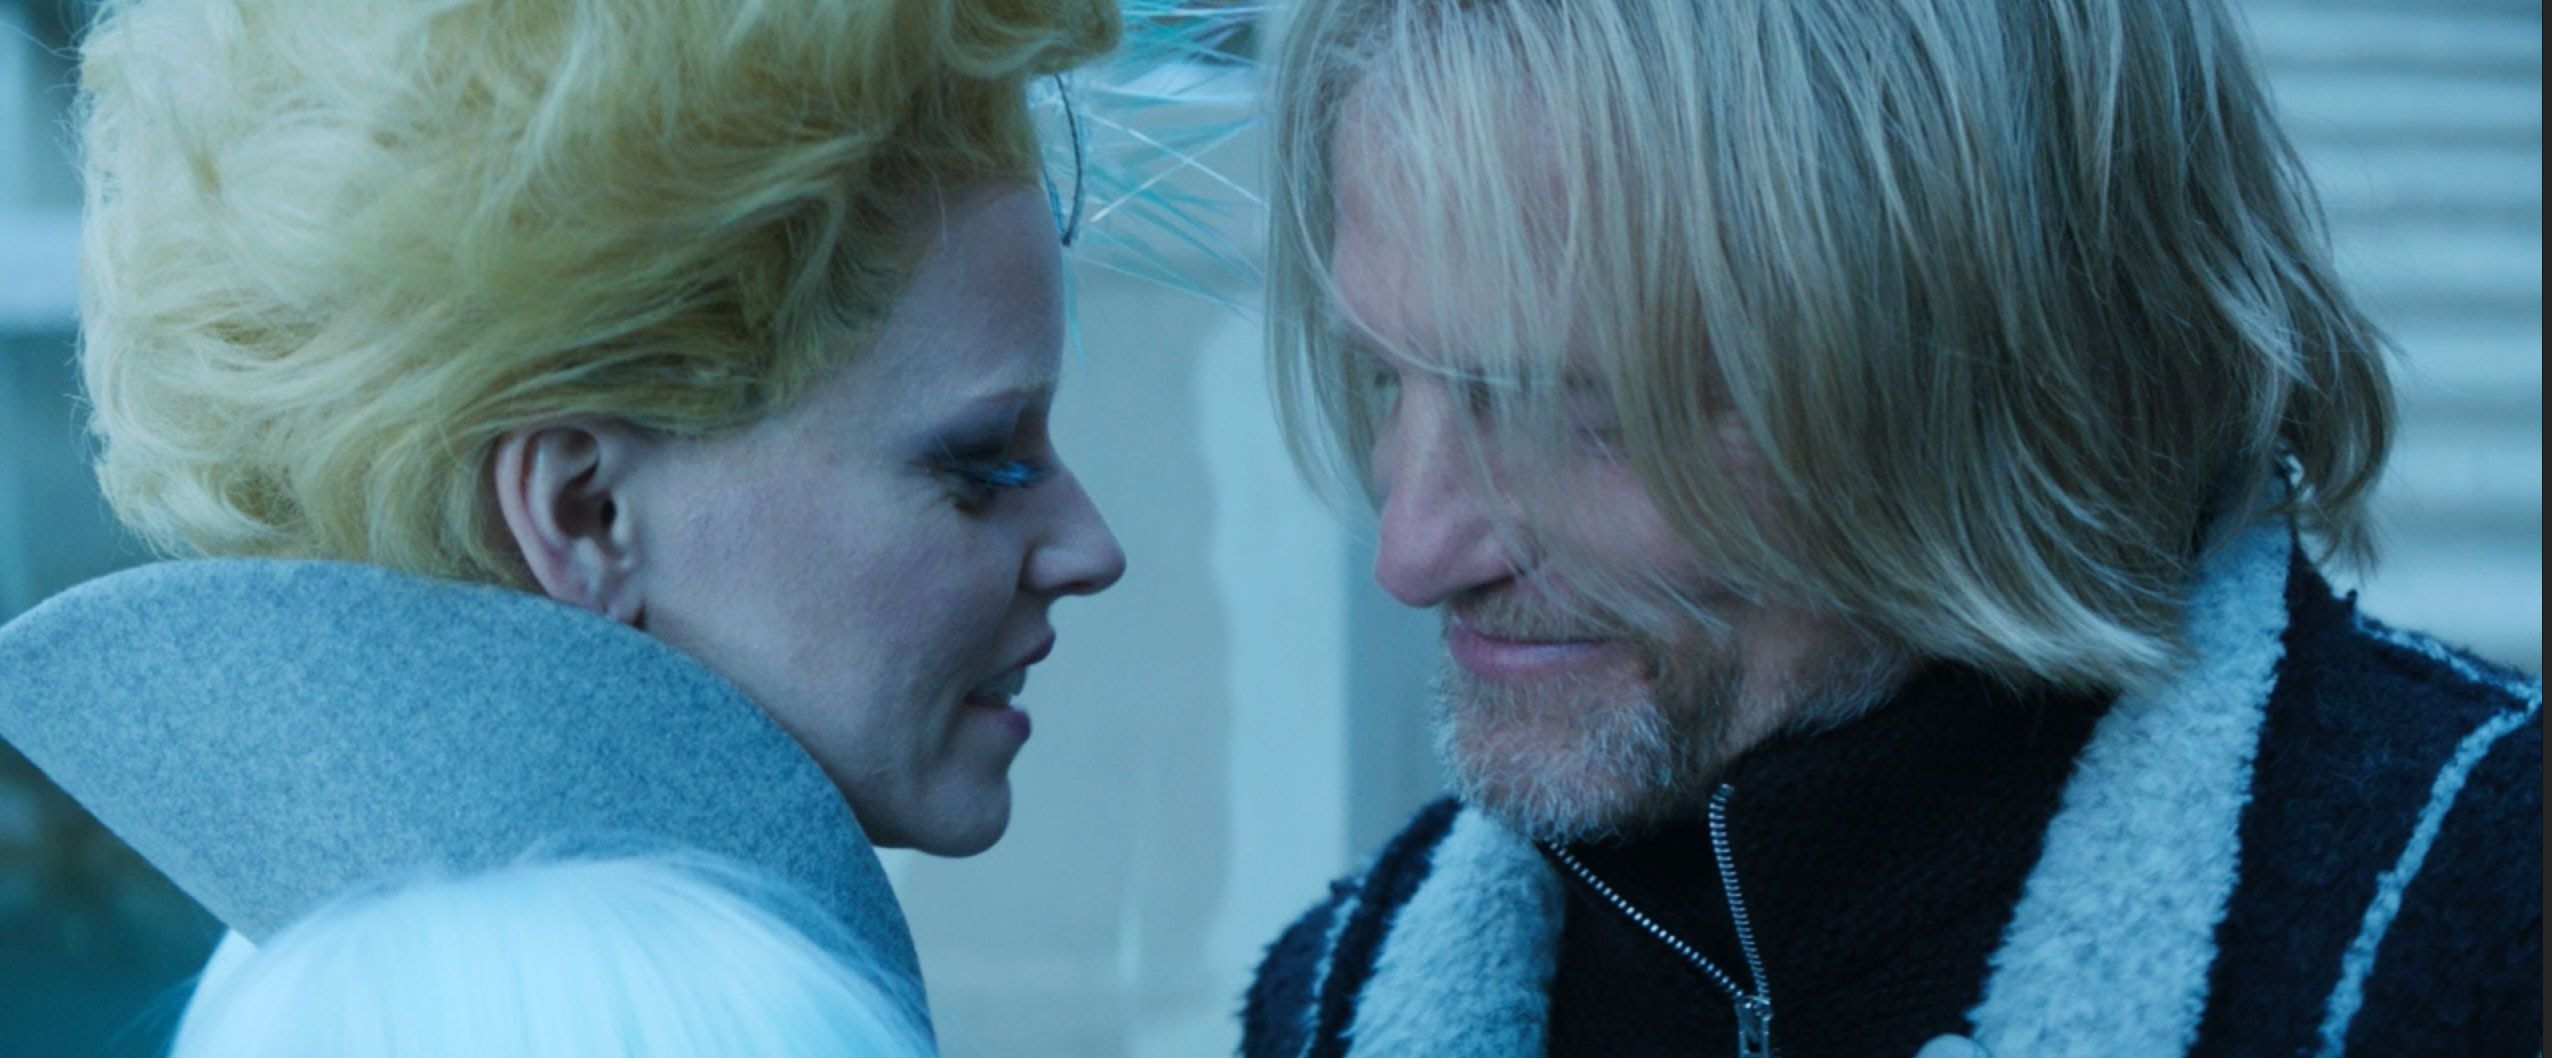 Effie and Haymitch Kiss in 'The Hunger Games: Mockingjay, Part 2 ...